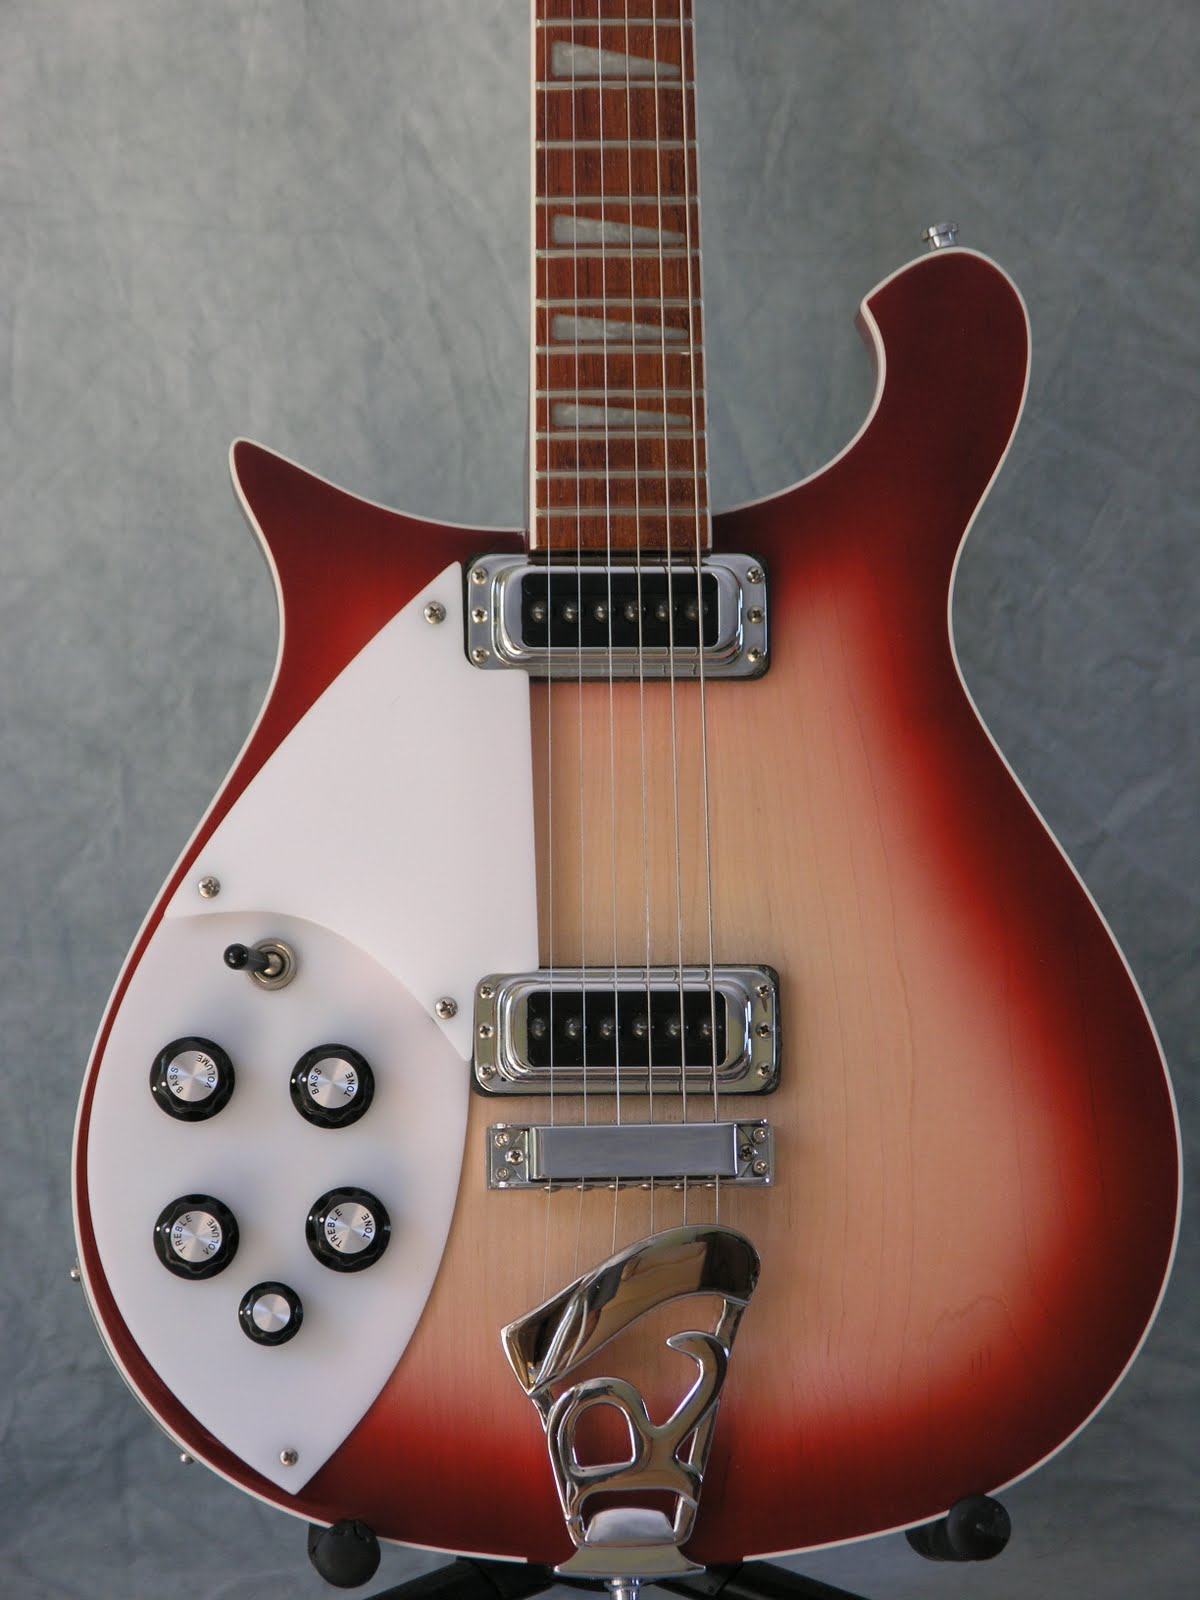 jerry 39 s lefty guitars newest guitar arrivals updated weekly rickenbacker 620 6 fireglow used. Black Bedroom Furniture Sets. Home Design Ideas